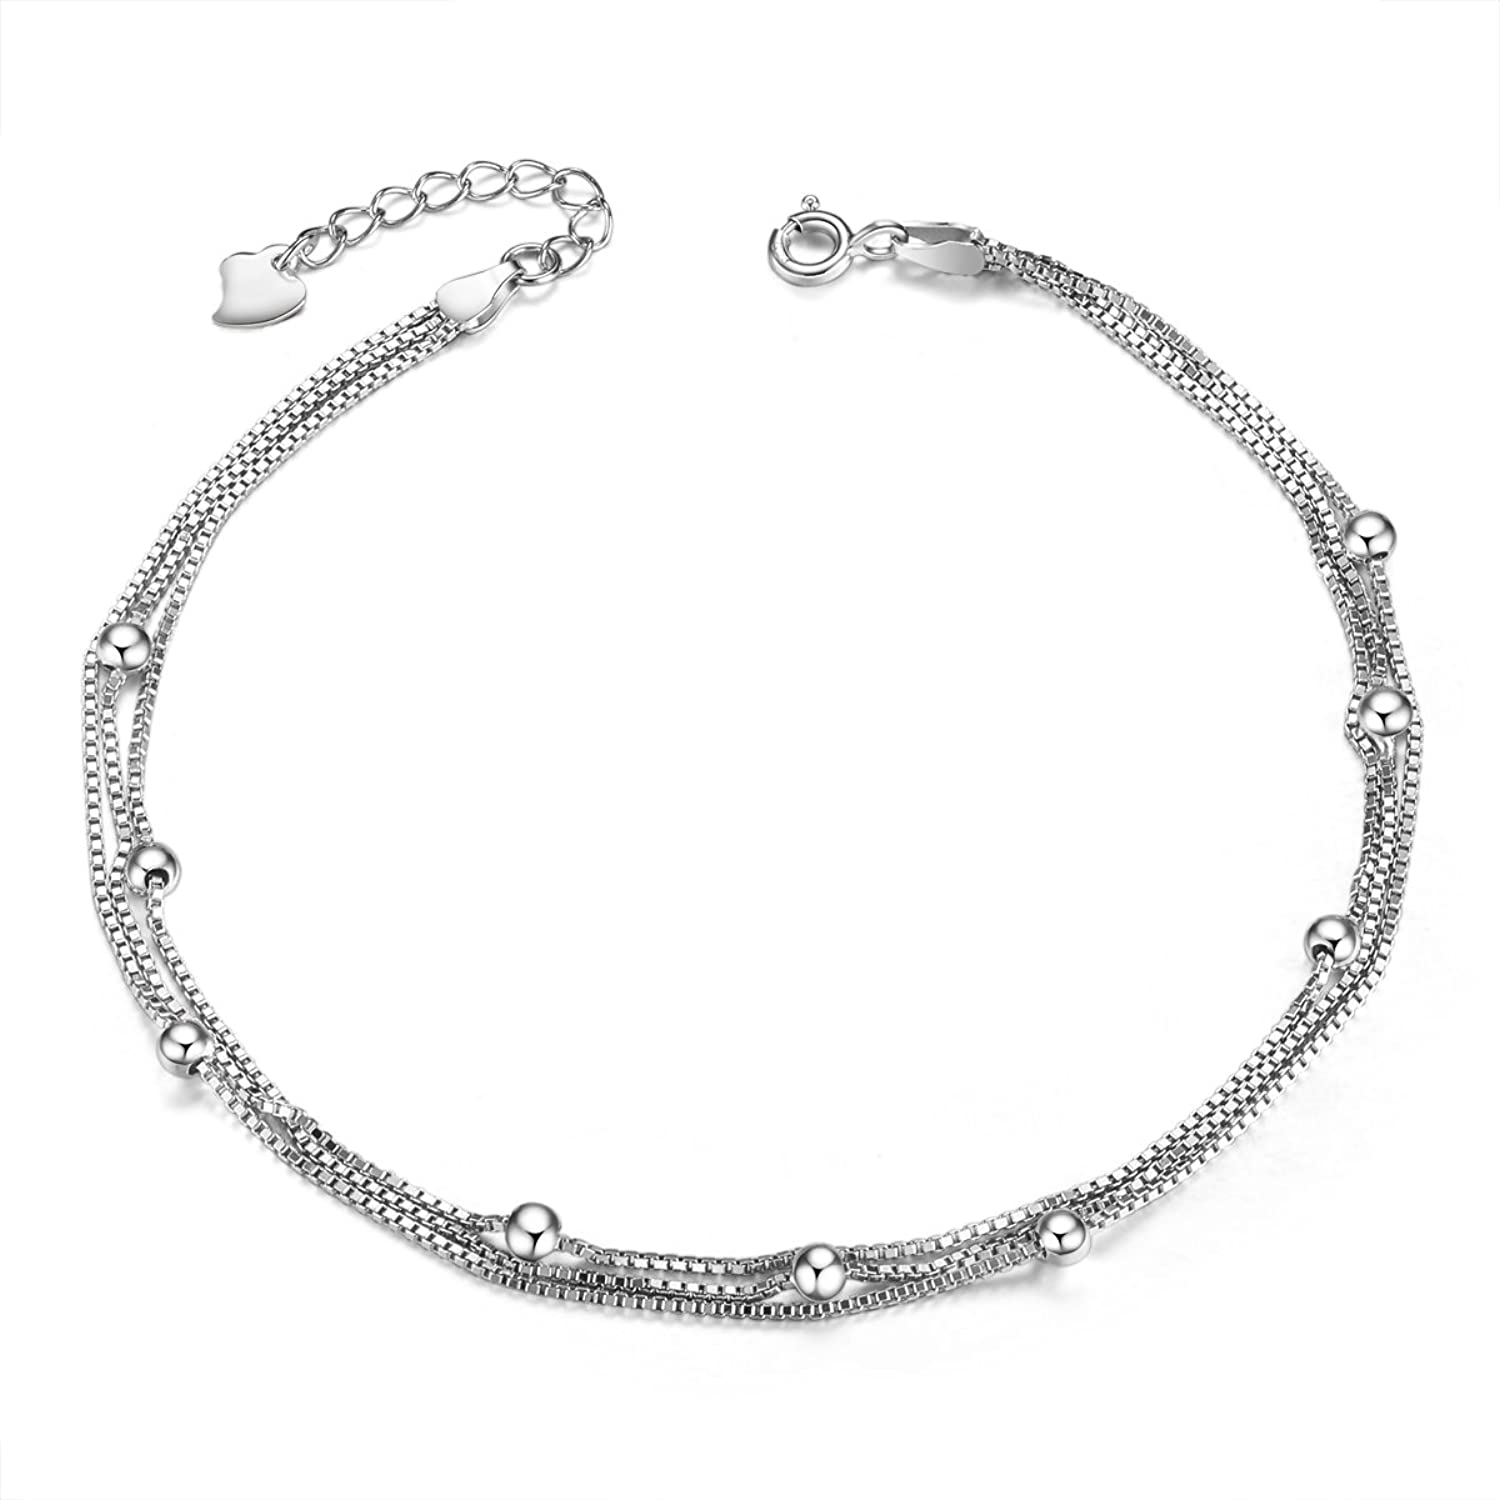 Chain Of Continuous Small Open Hearts Sterling Silver Anklet - Adjustable 9